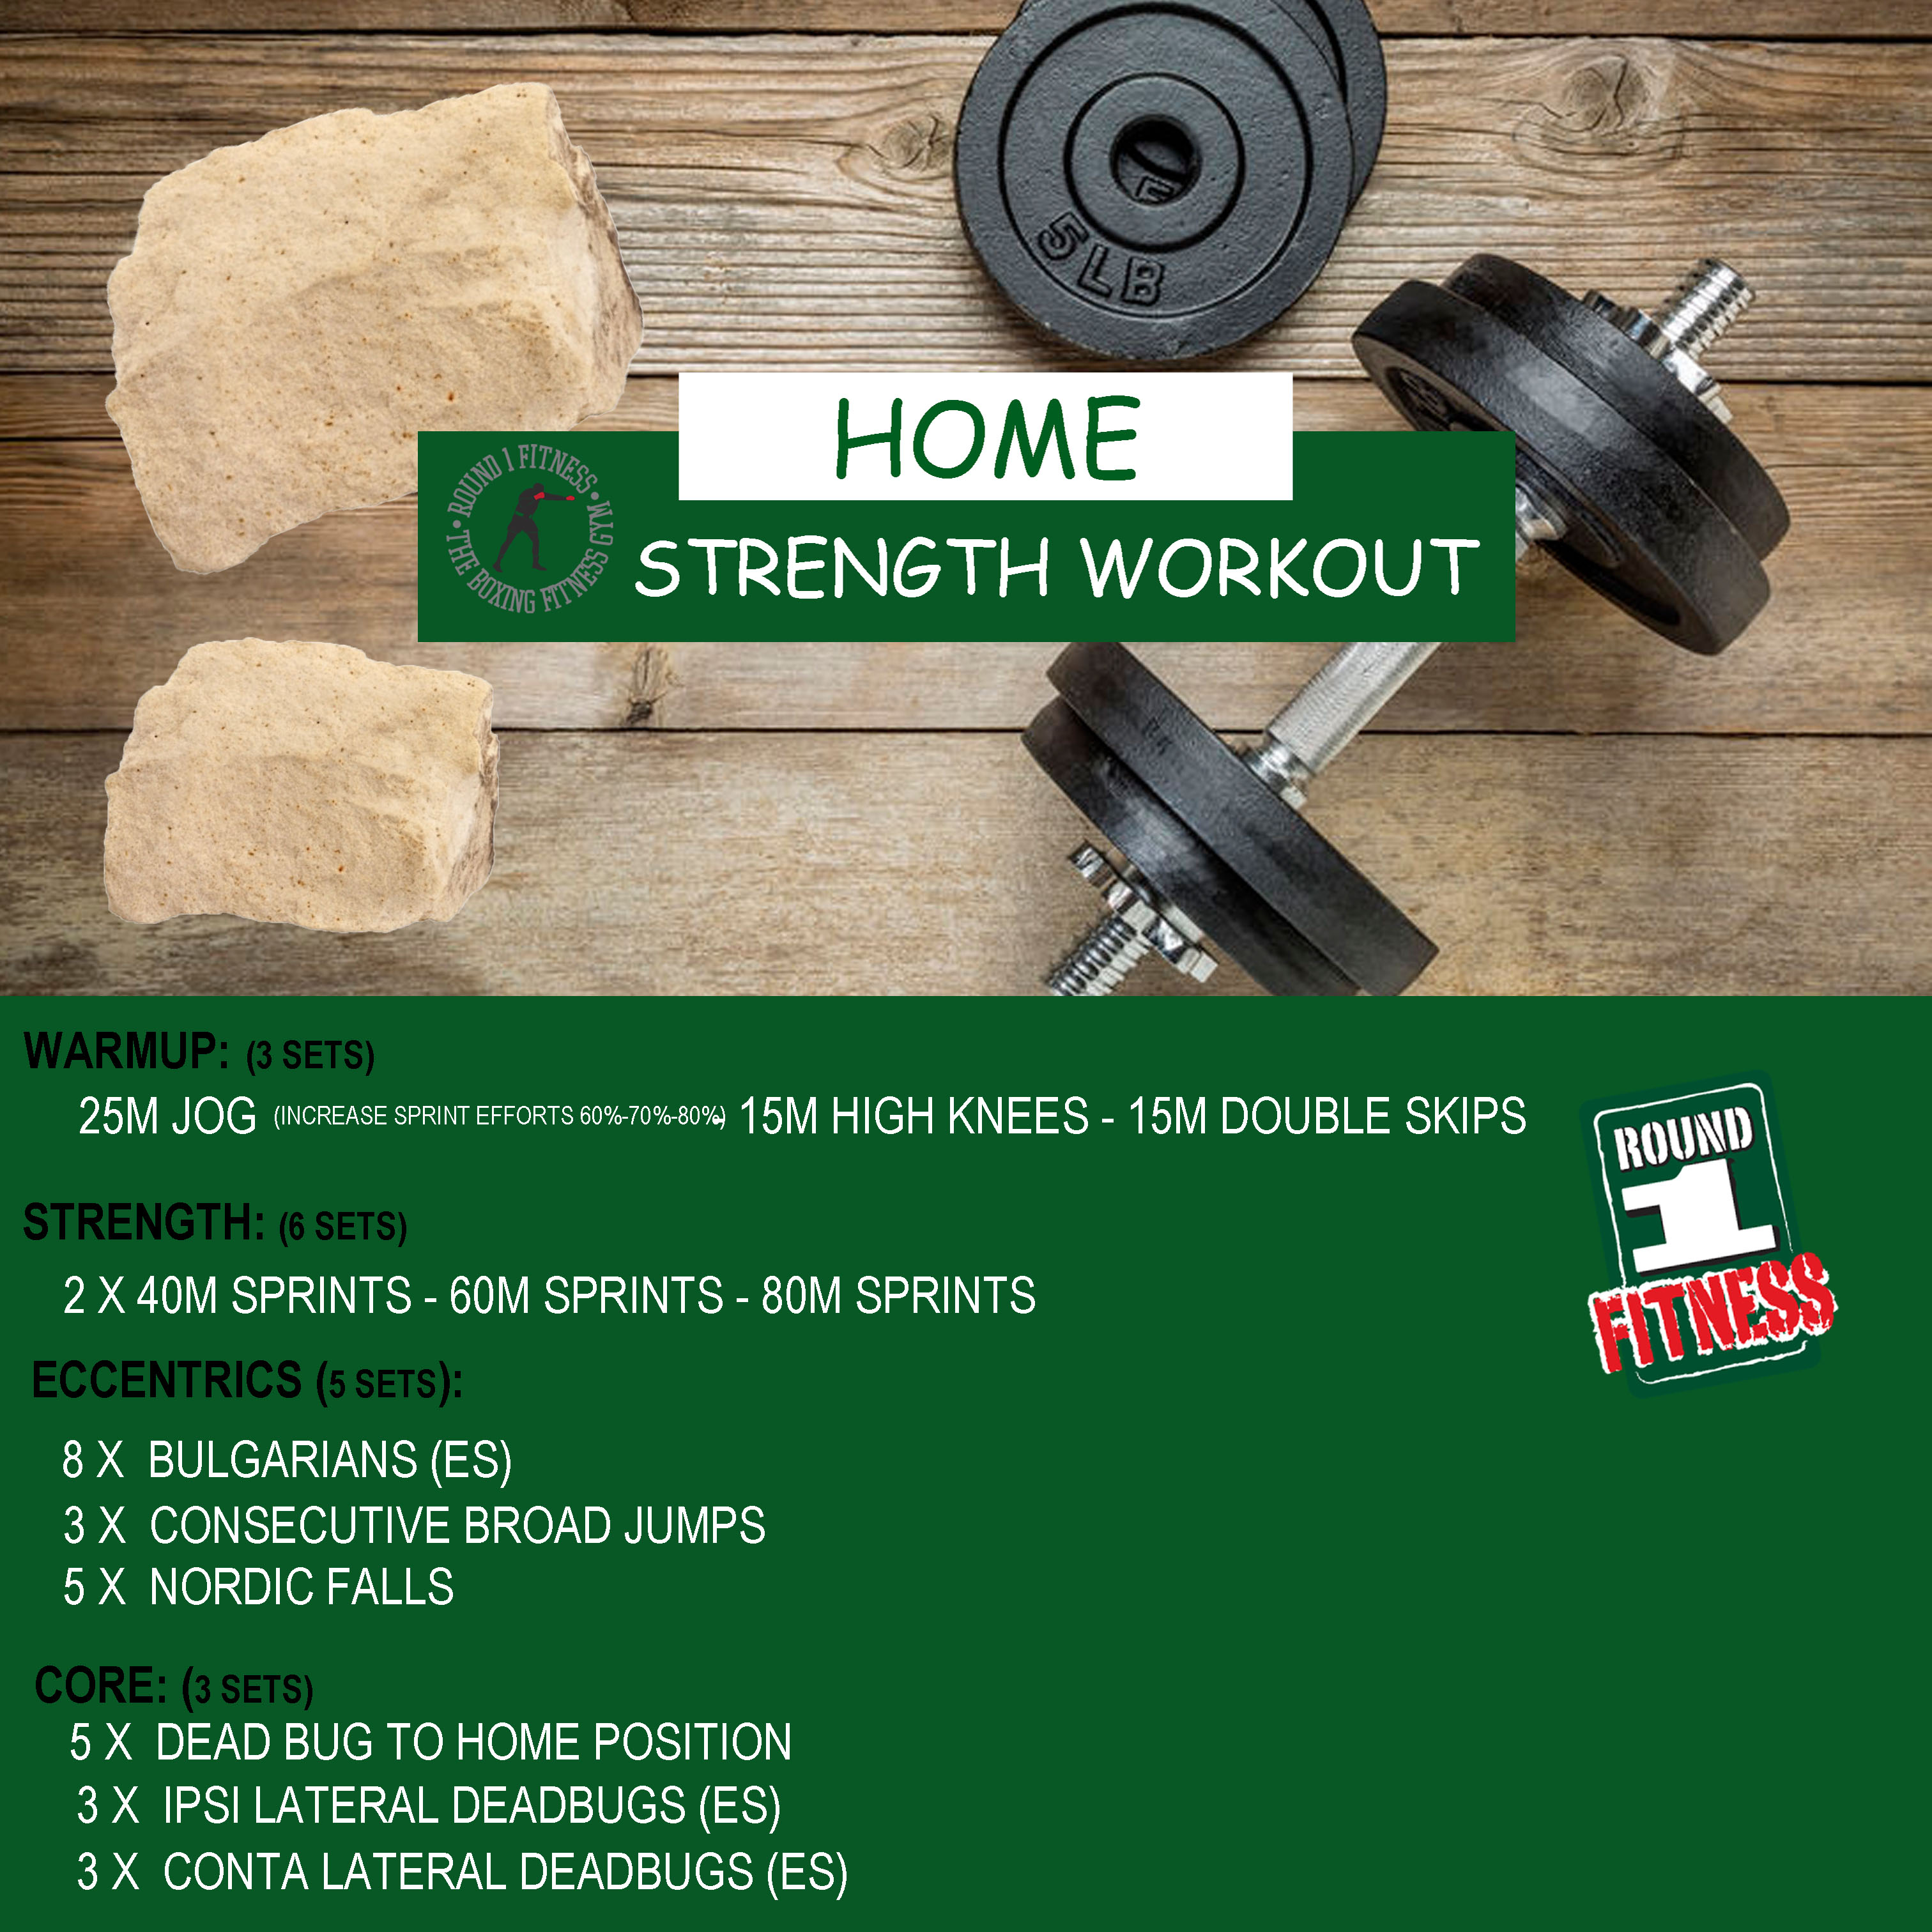 COVID Lockdown#3 – Round 1 @ Home Strength – Workout 3, April 27th 2021